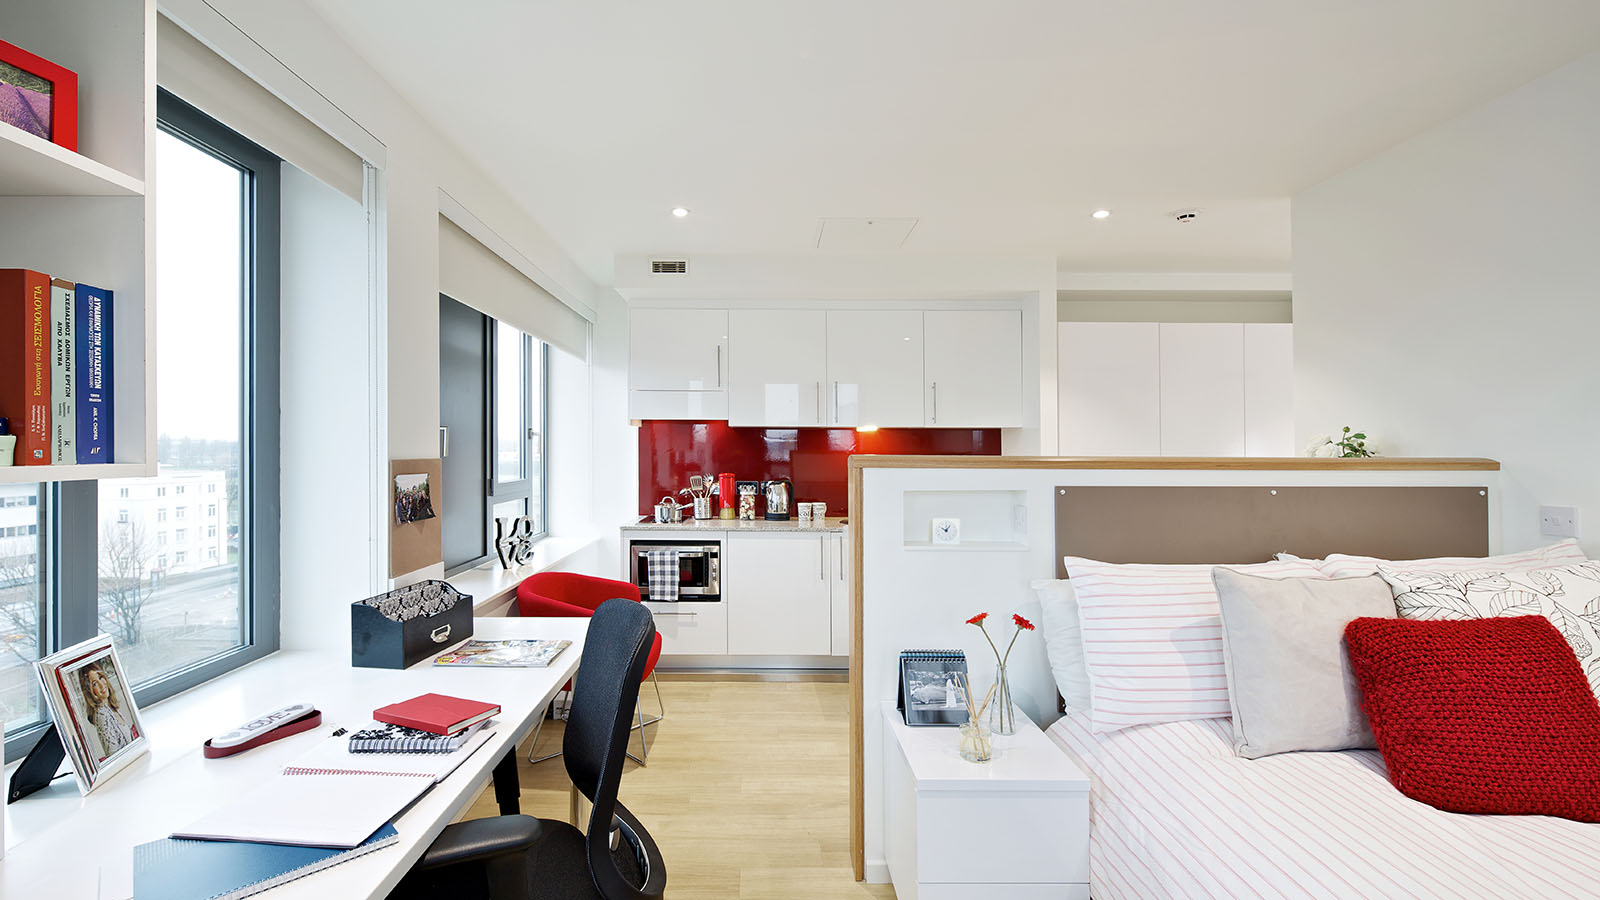 Premium studio with bed, desk and kitchen at Wood Lane Studios